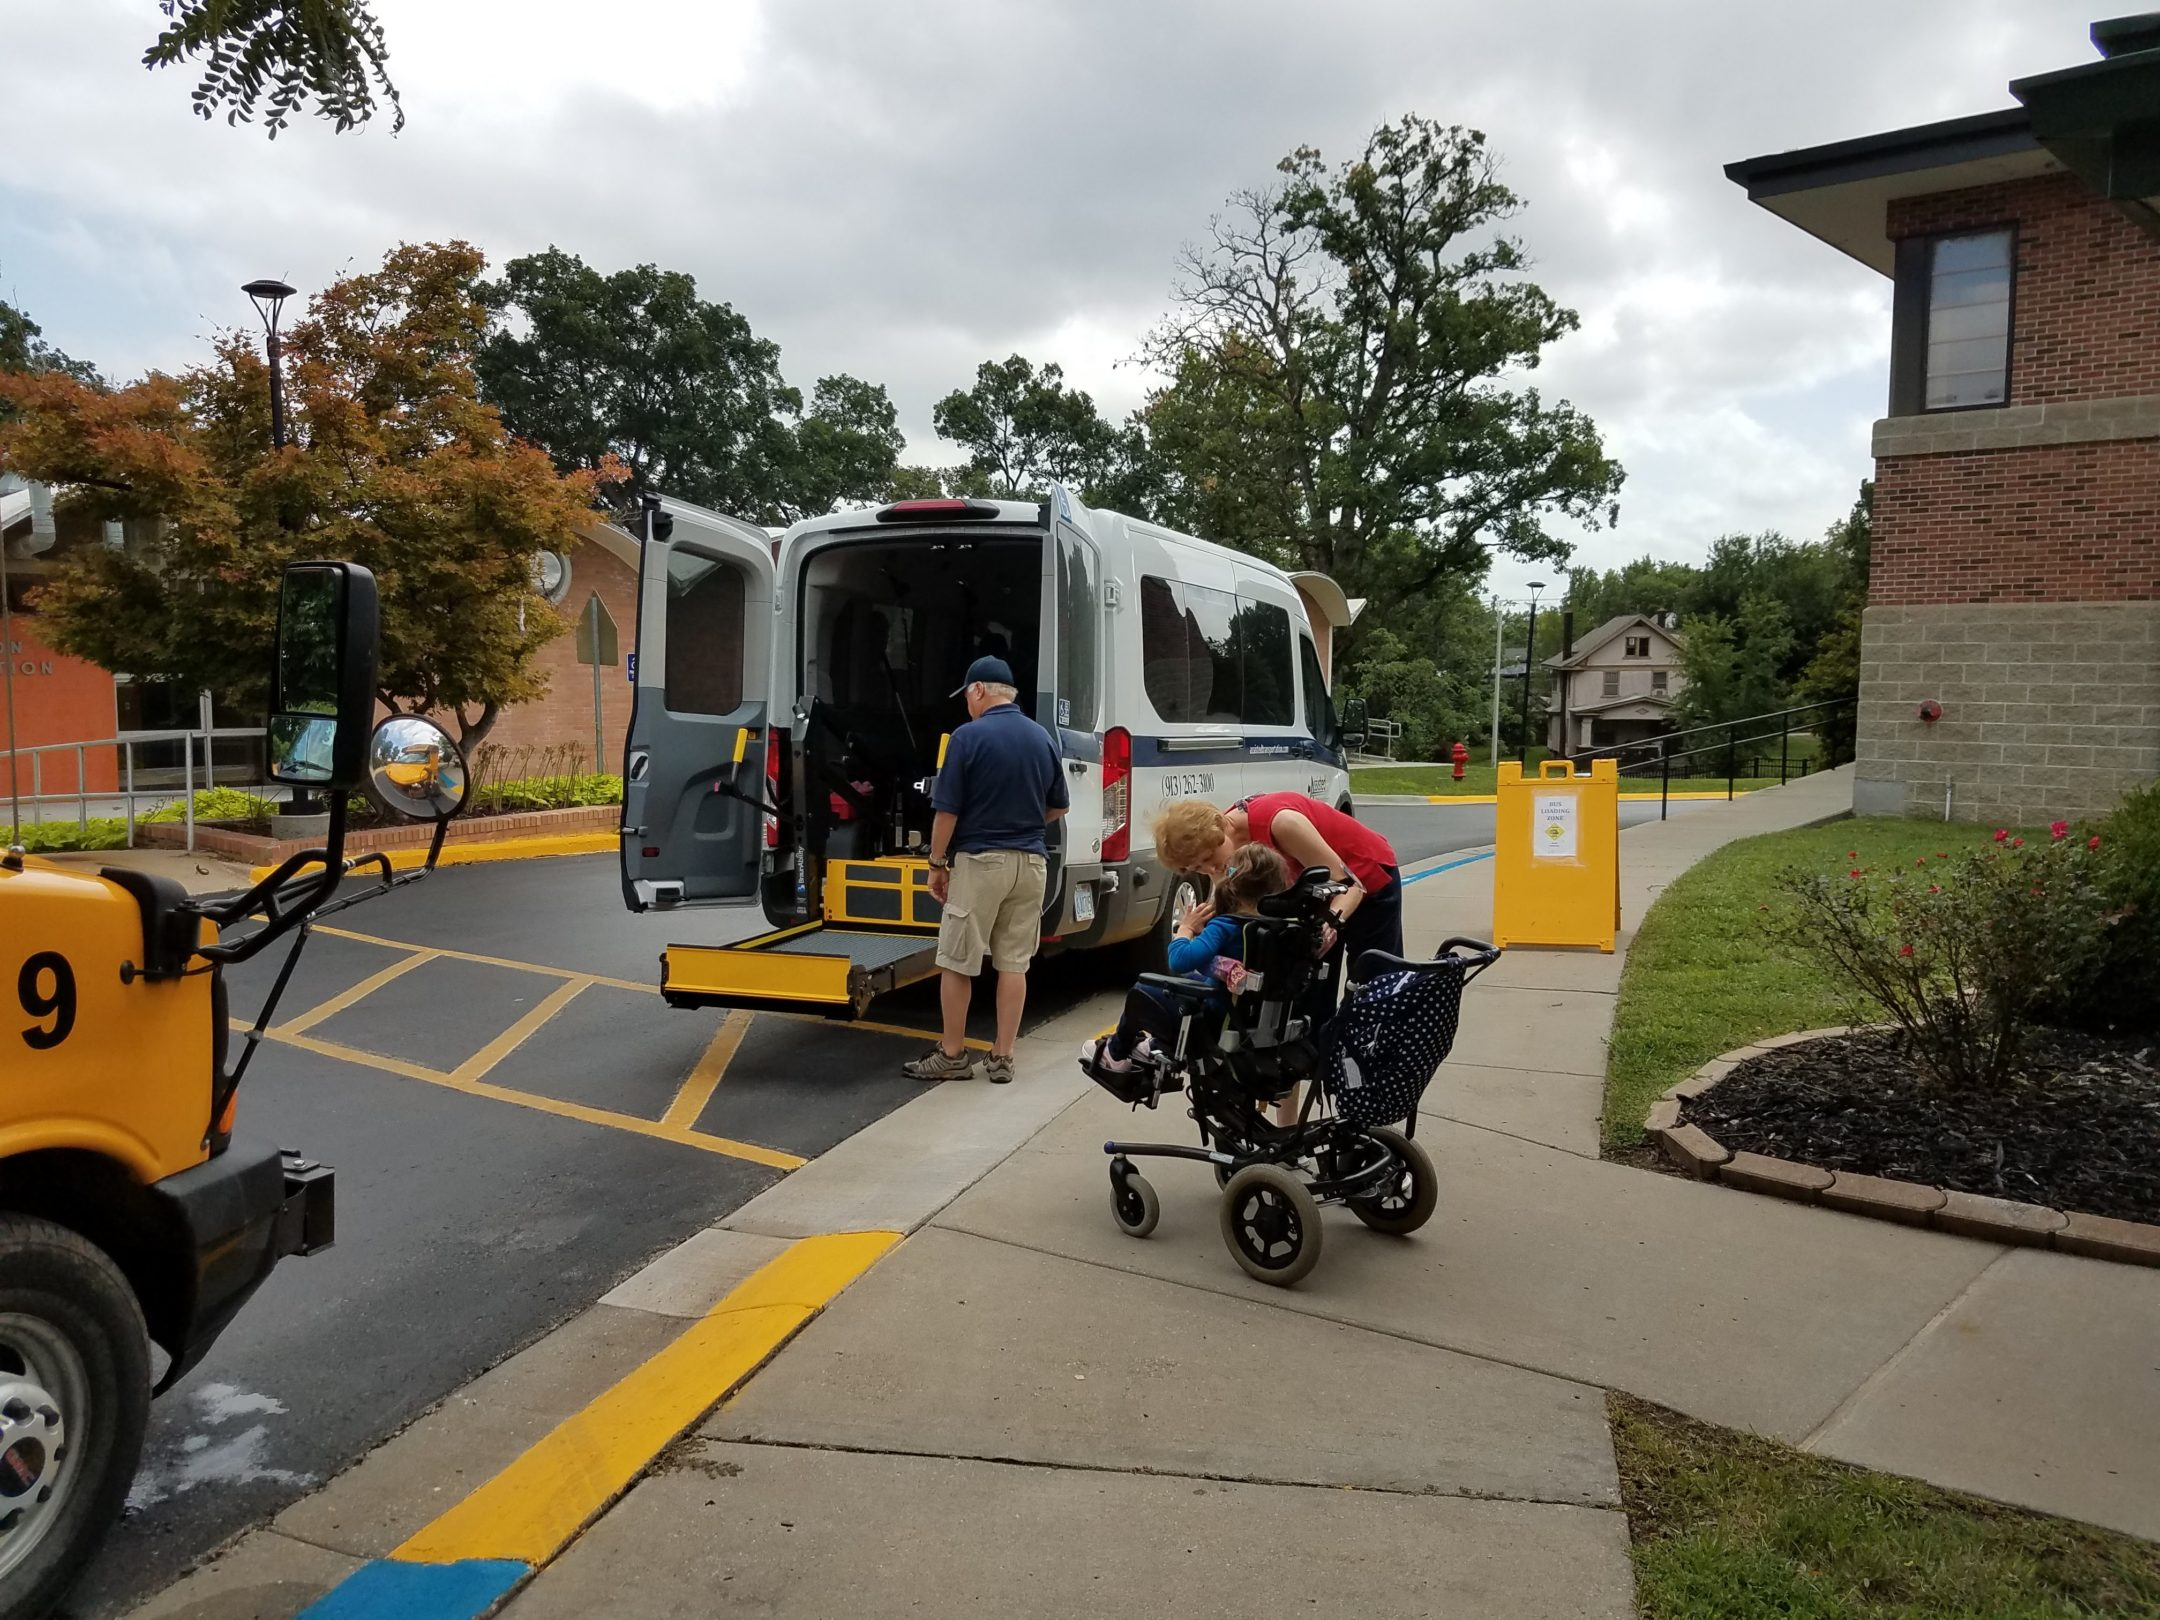 A white van with wheelchair lift parked in front of yellow cross walk between Recreation Building and Edlund Hall. A student who is in a wheelchair is waiting with teacher in red shirt to board the van. The front hood of a yellow bus is partially seen at the crosswalk.